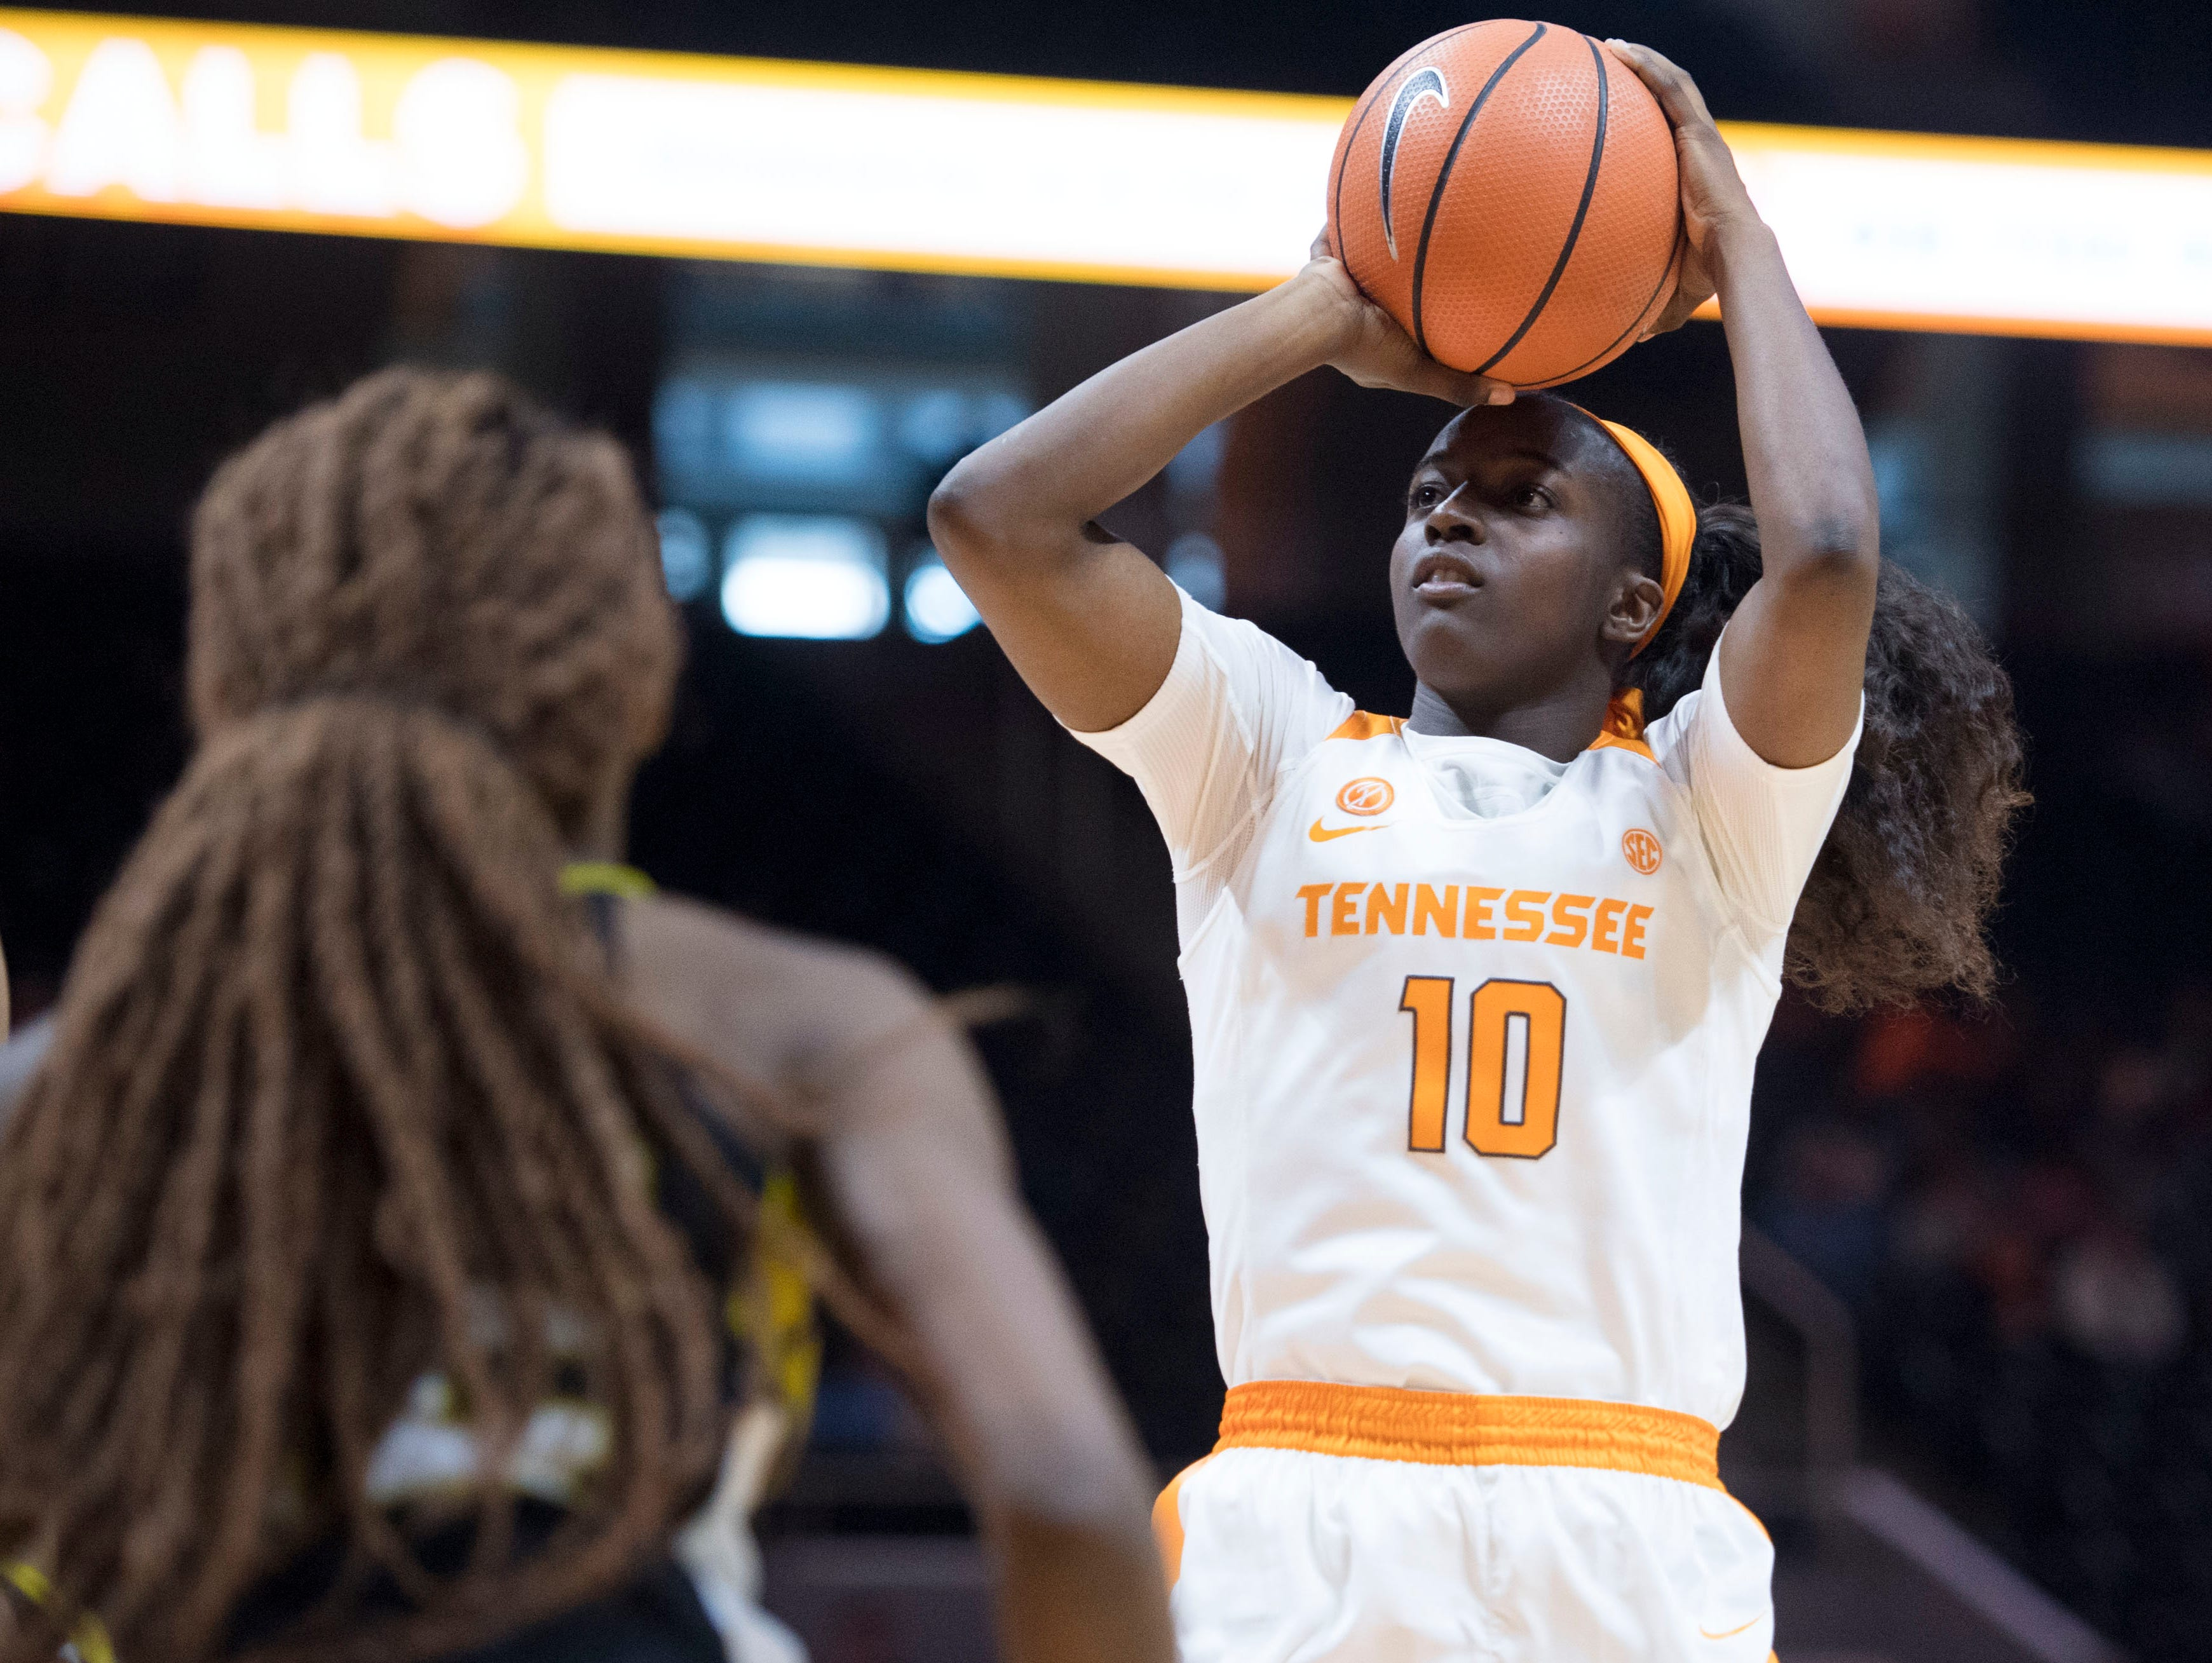 Tennessee's Meme Jackson puts up a shot against Alabama State's at Thompson-Boling Arena on Sunday, December 3, 2017.